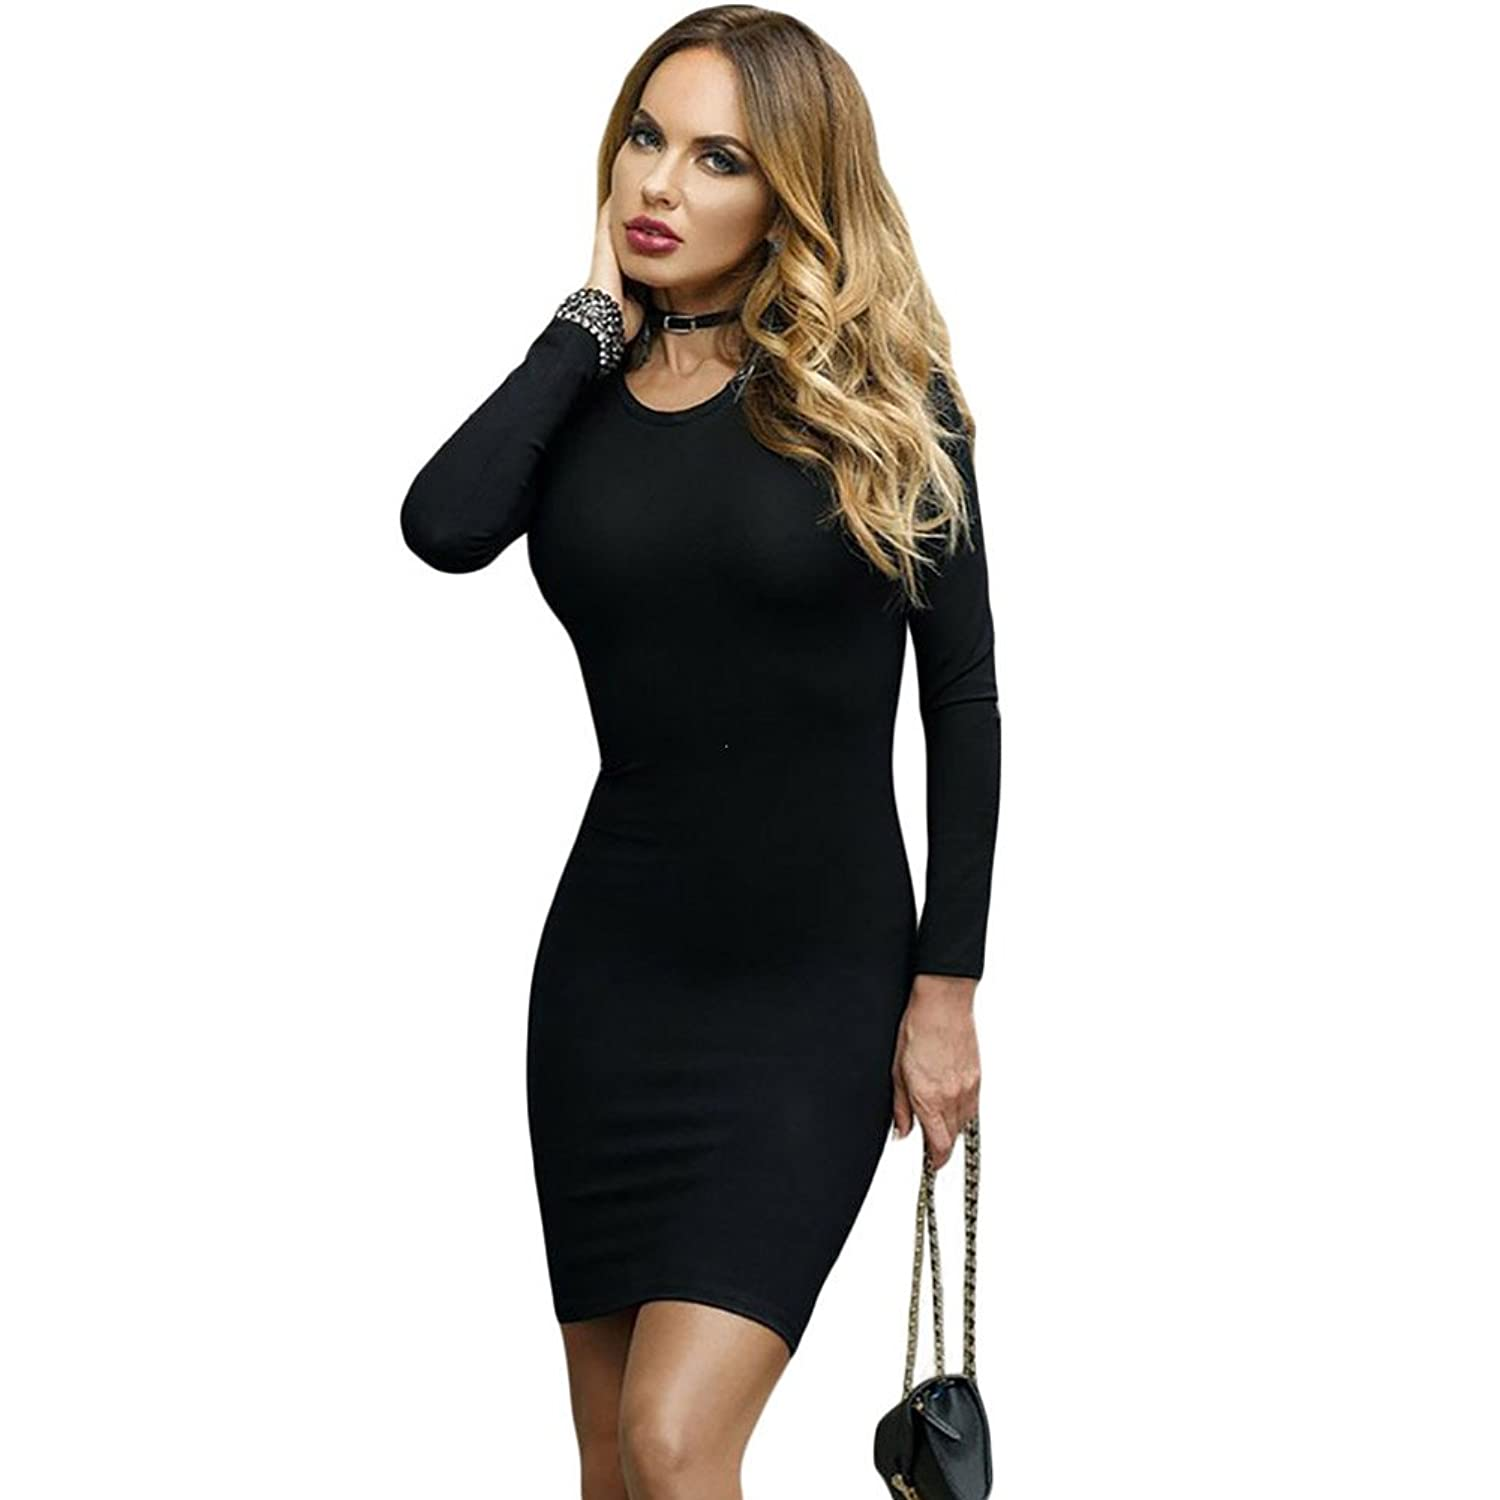 BENNINGCO Womens Lace Up Back Long Sleeve Bodycon Mini Dress